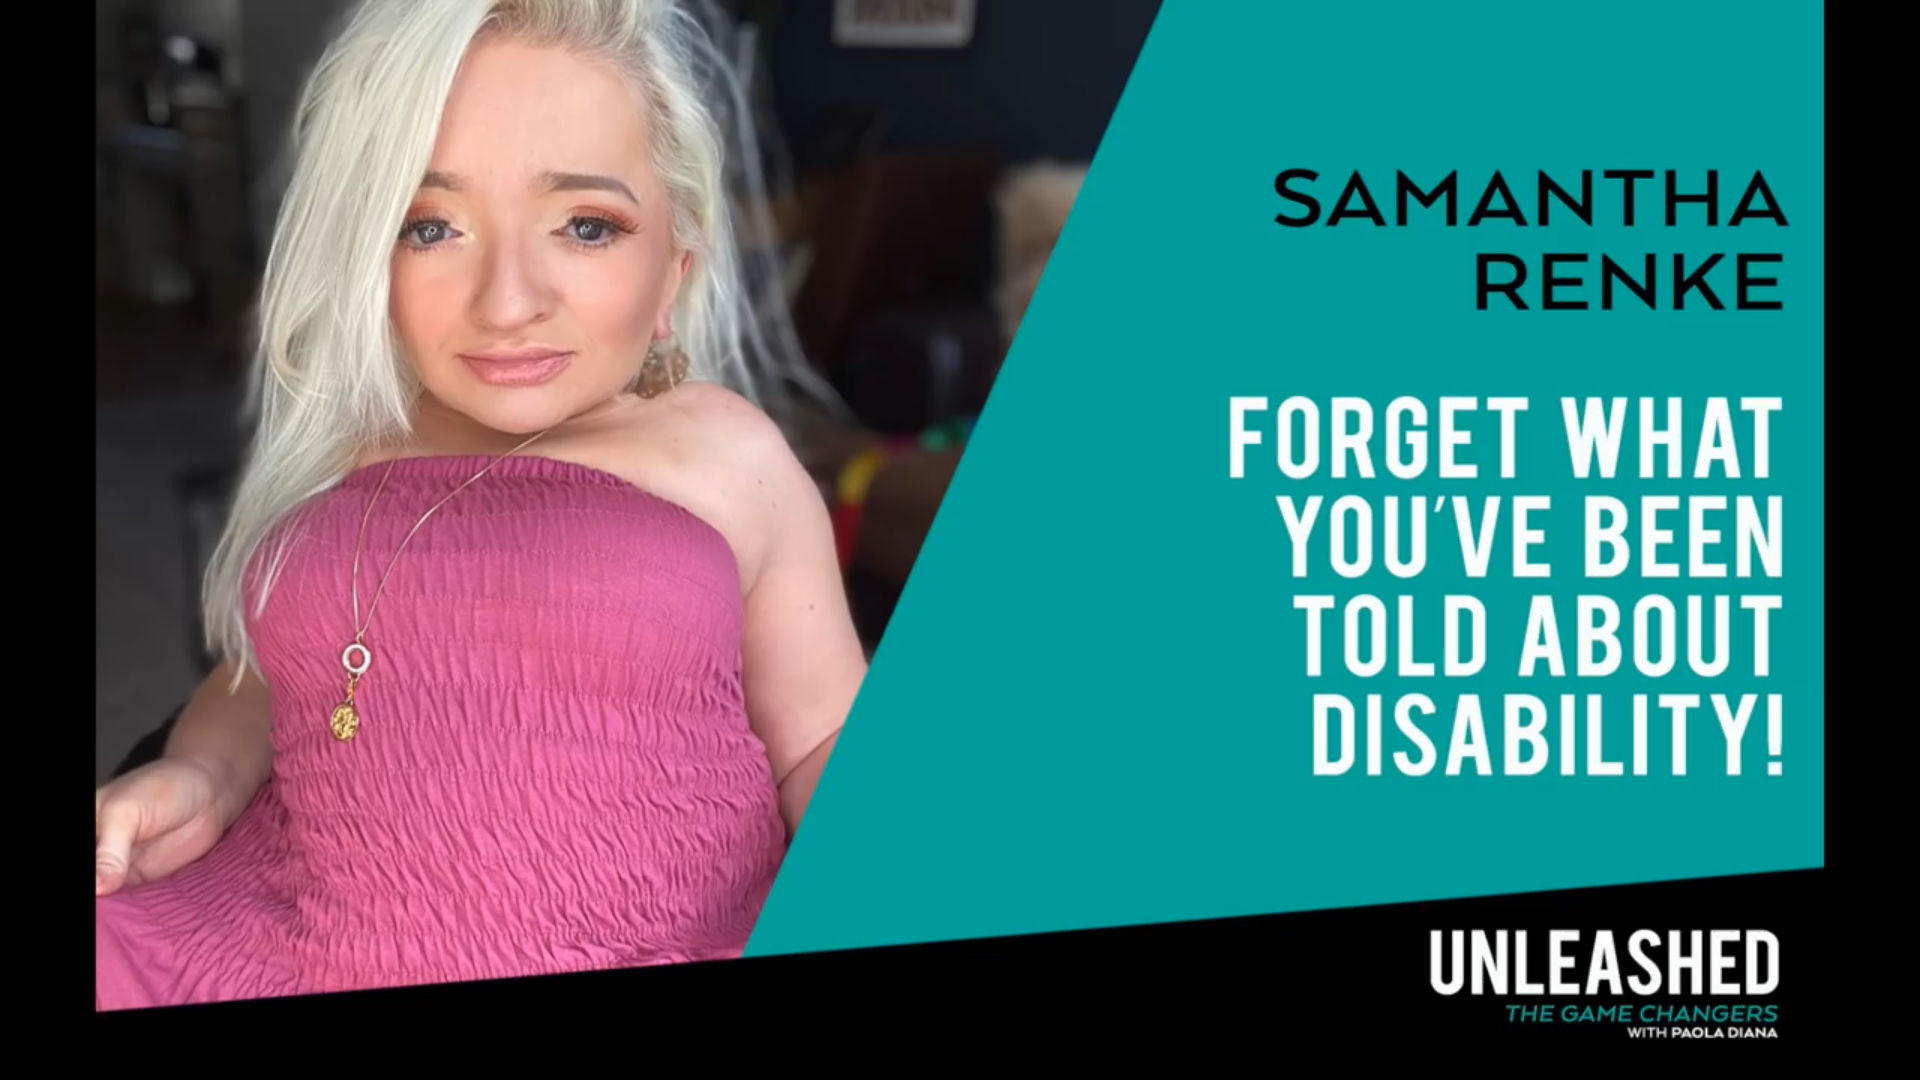 SAMANTHA RENKE. FORGET WHAT YOU'VE BEEN TOLD ABOUT DISABILITY!